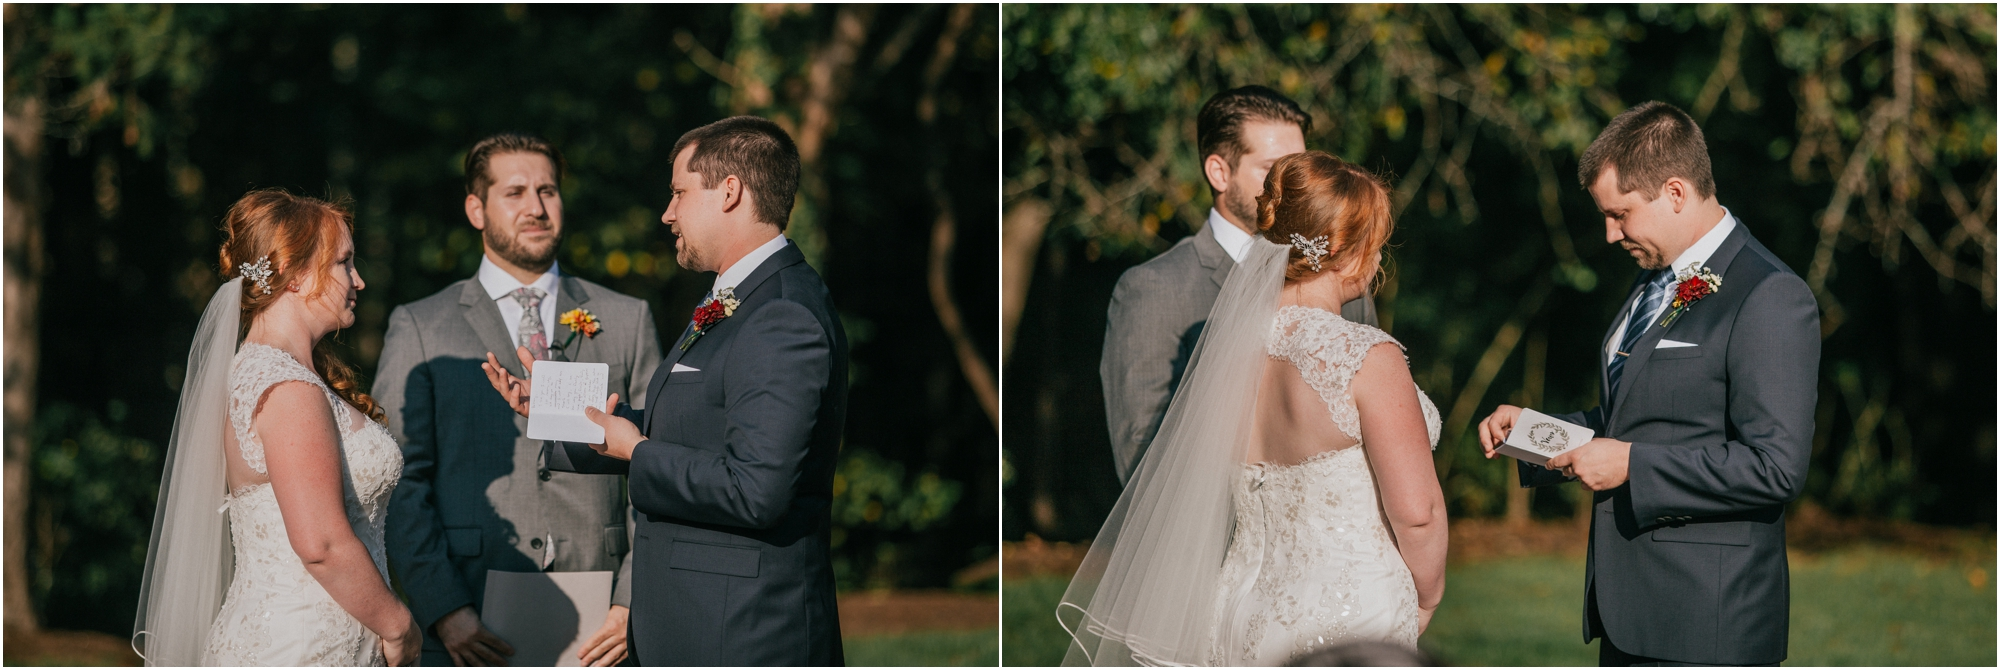 Fall-gem-stone-earthy-succulent-mount-airy-mansion-wedding-tennessee-elopement-photographer_0097.jpg